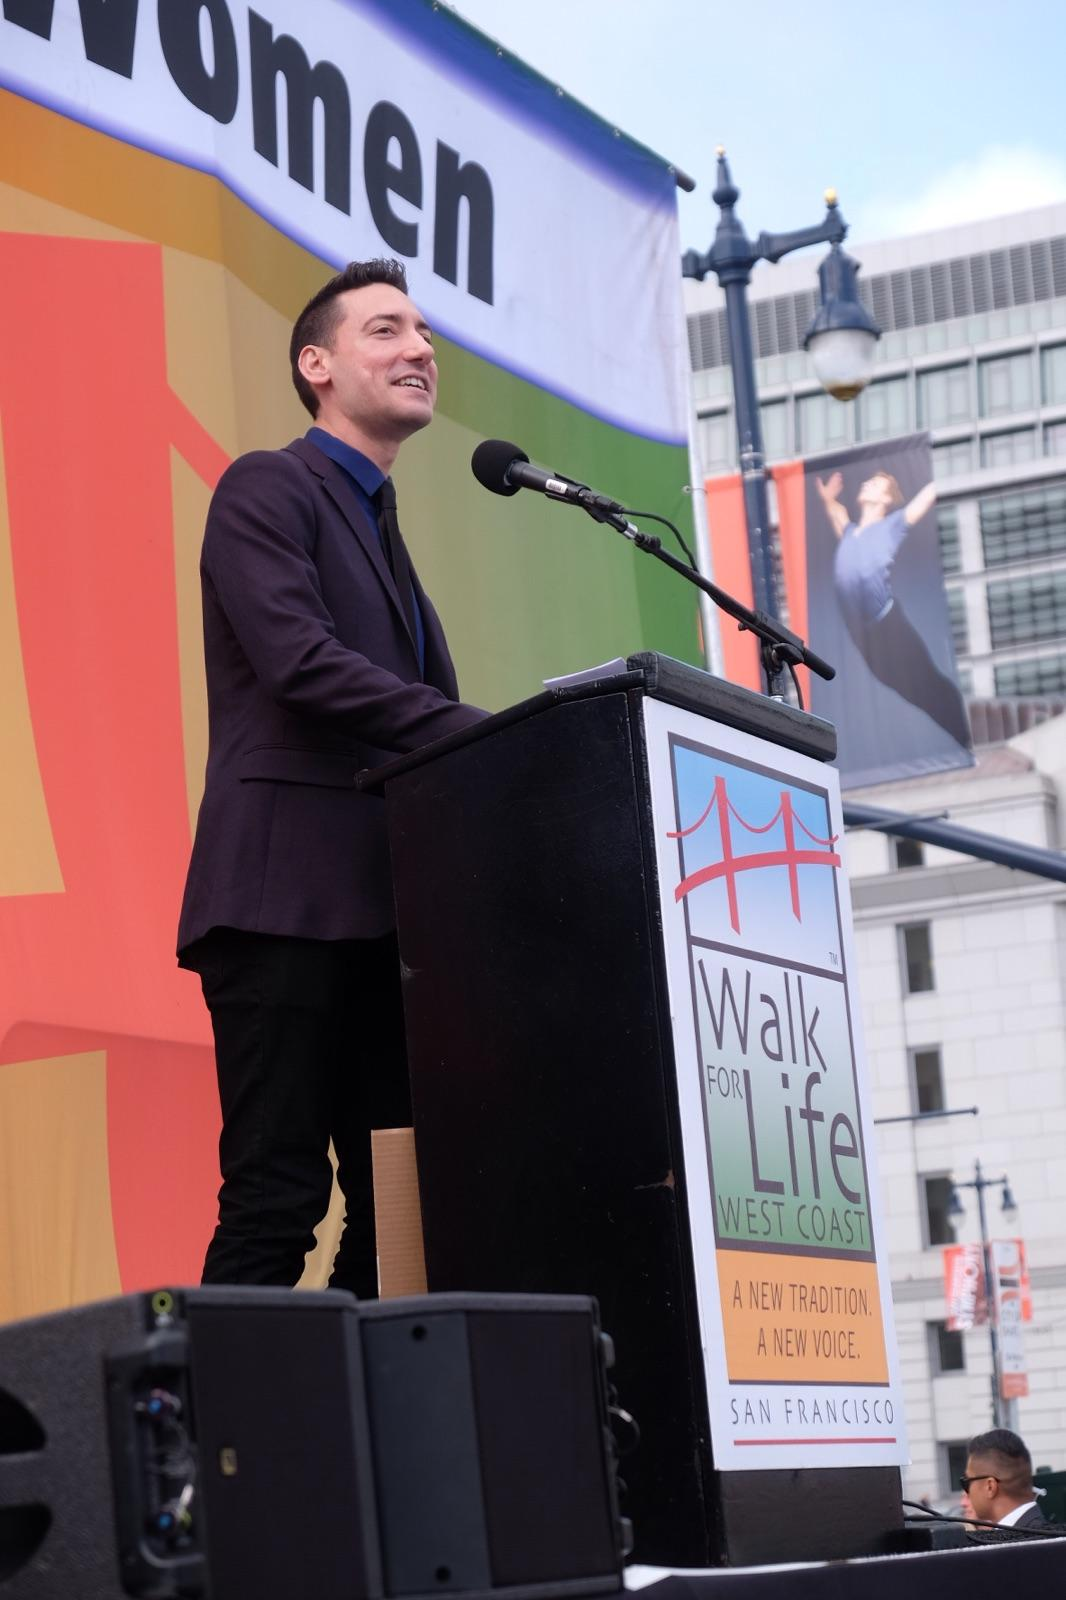 David Daleiden at the rally